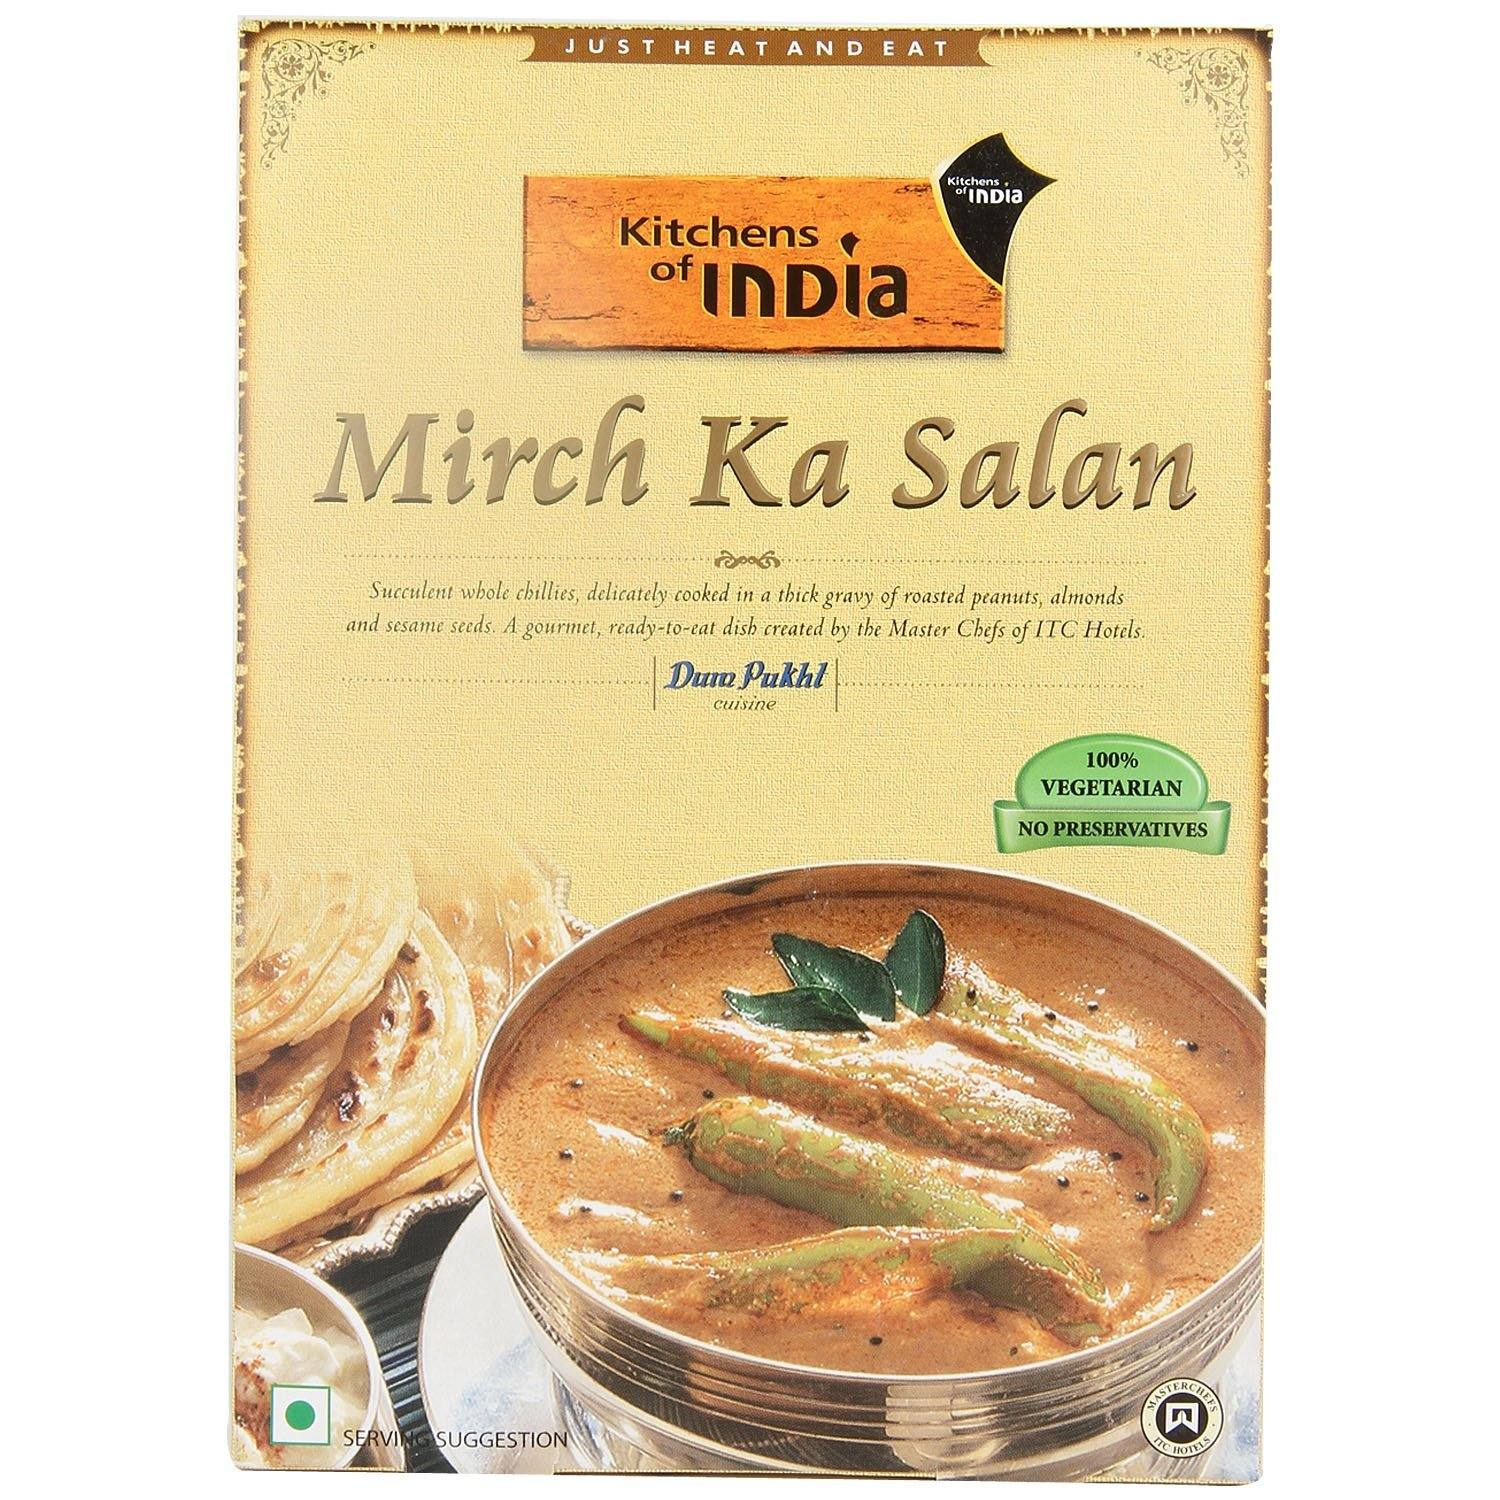 kitchens of india kitchen and bath remodel buy ready meal mirch ka salan 285g box at online grocery shop hypercity fresh